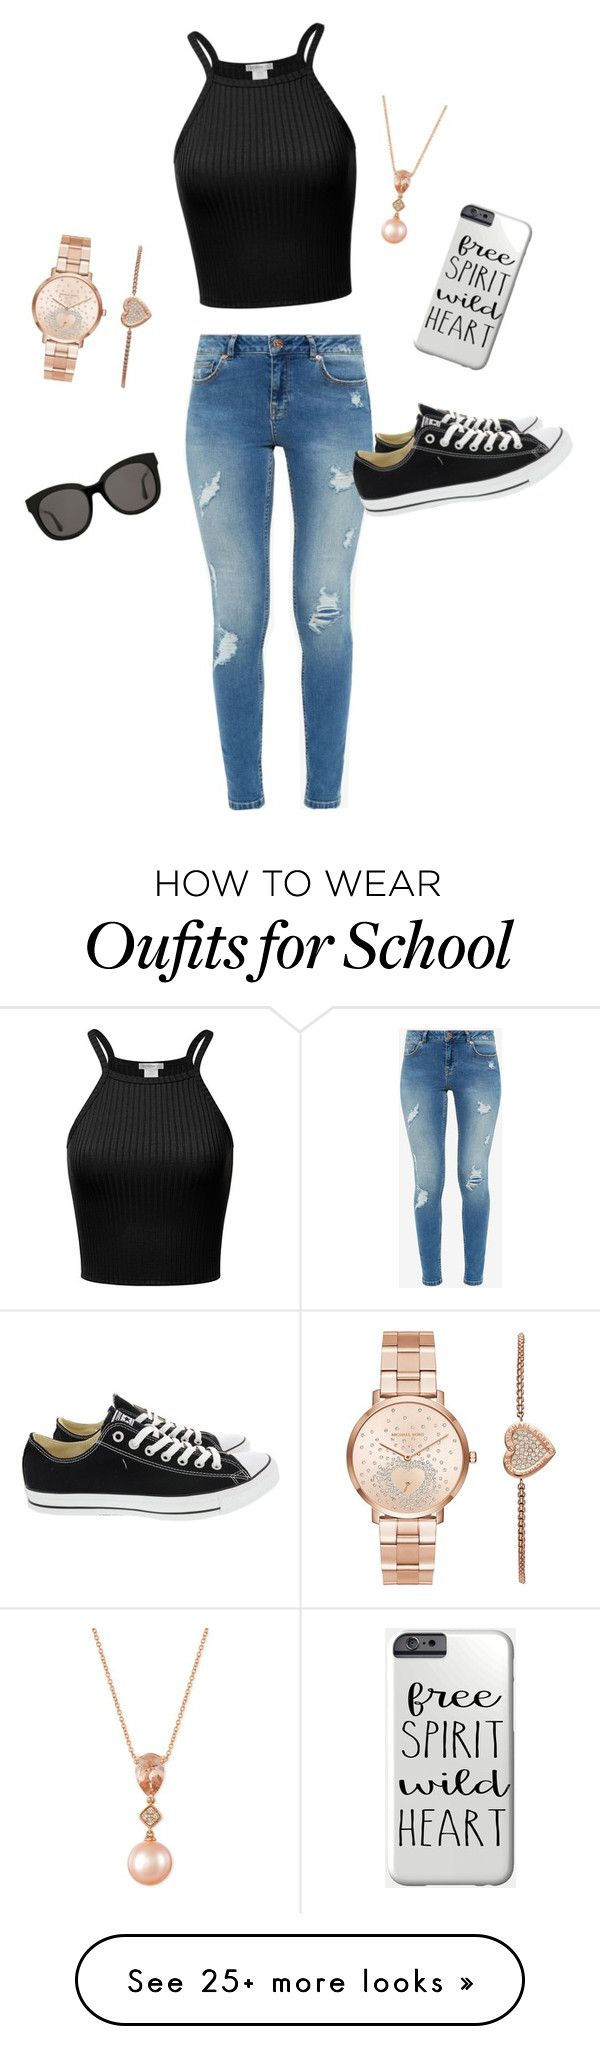 """""""Back to school"""" by cara-gross on Polyvore featuring Ted Baker, Converse, LE VIAN, Michael Kors and Gentle Monster"""